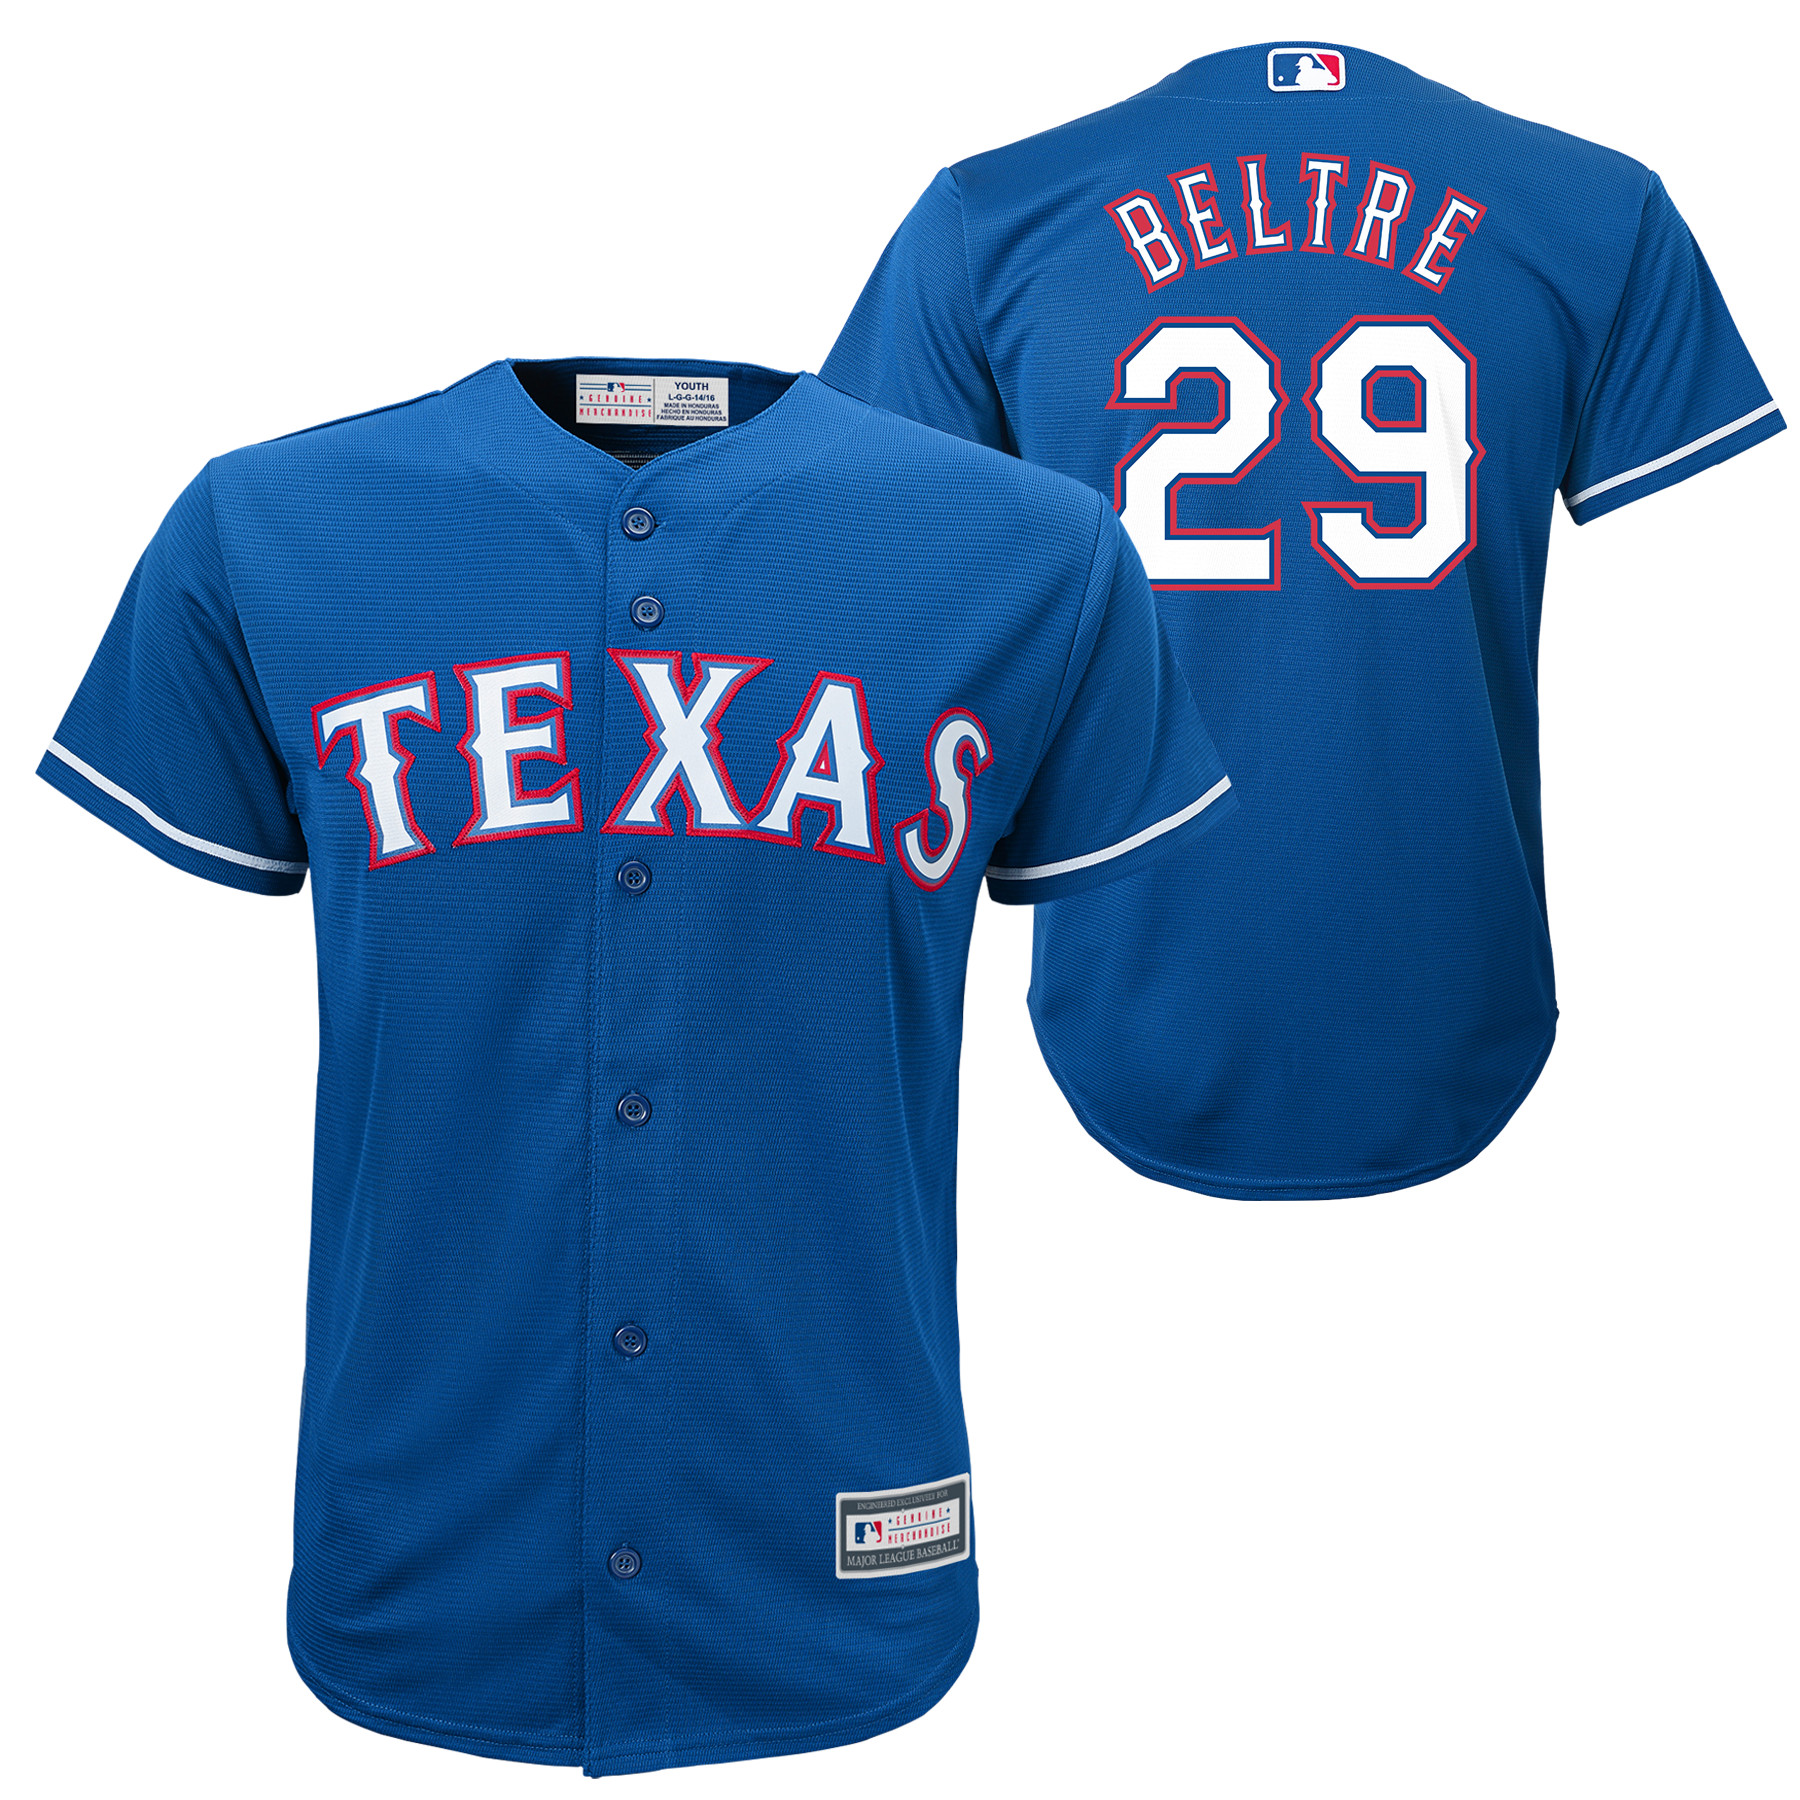 Adrian Beltre Texas Rangers Youth Player Replica Jersey - Royal